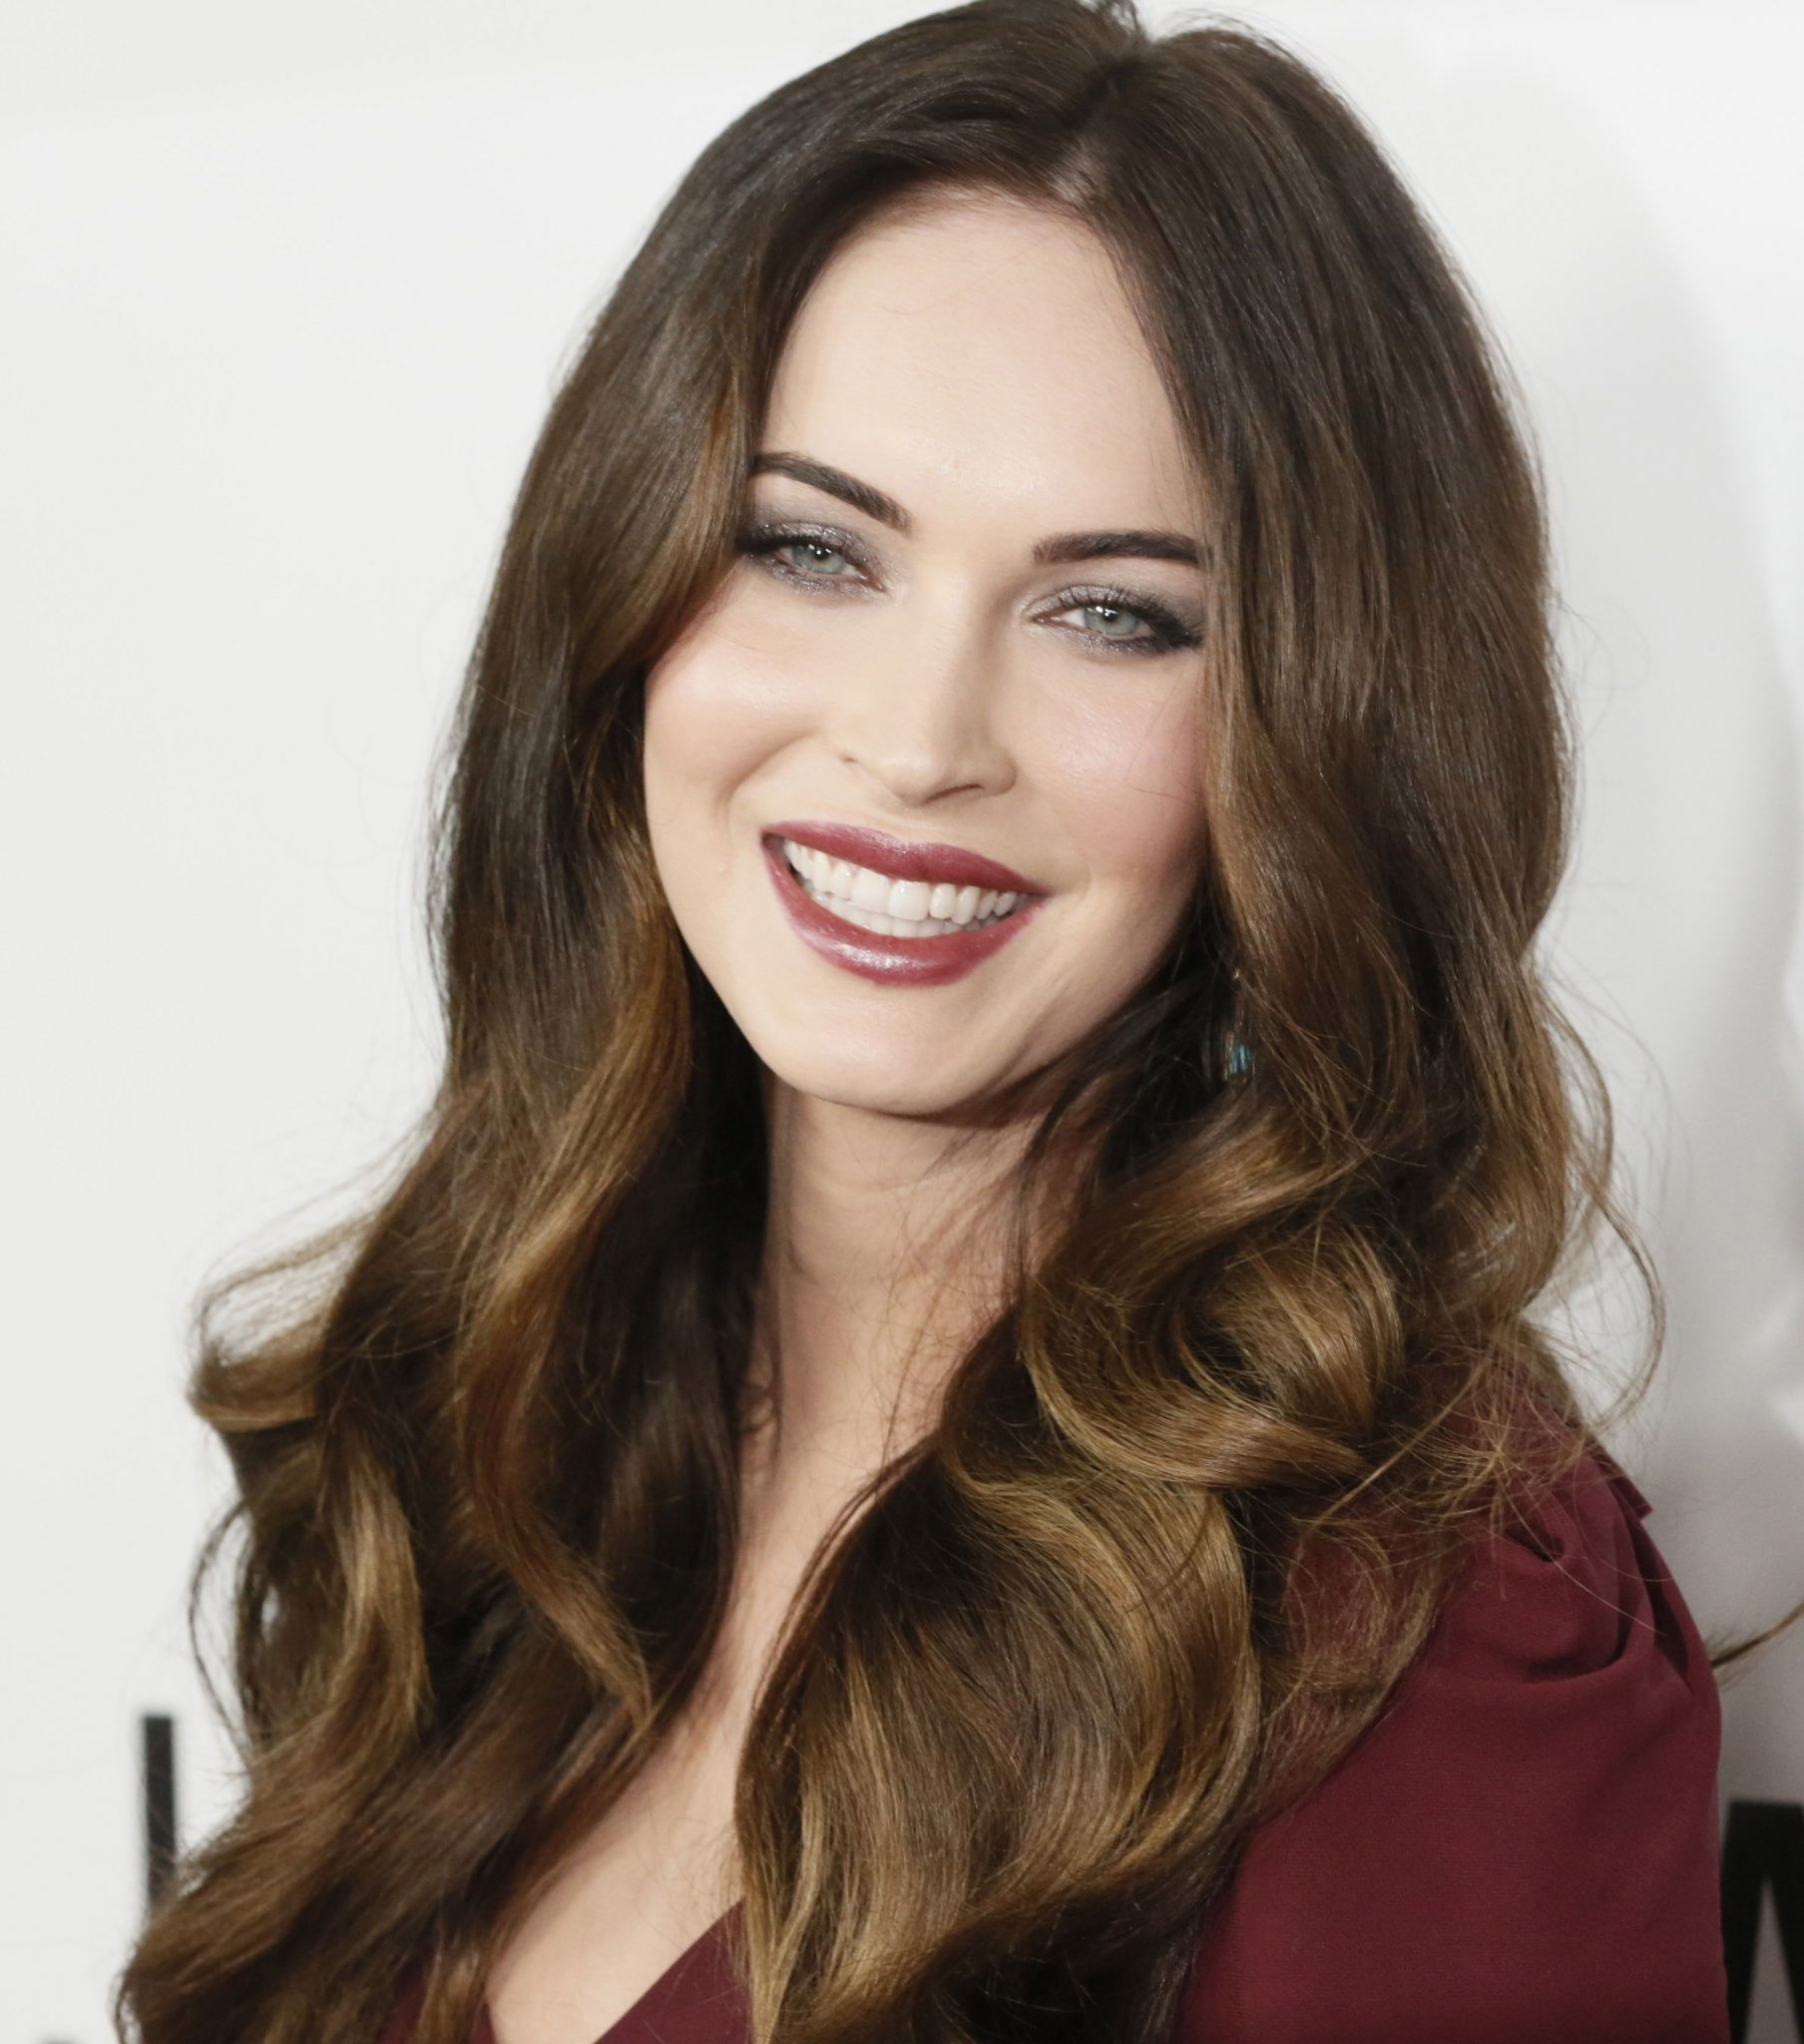 bio, biography, hollywood, boyfriend, husband, celebrity, facebook, fashion, female, Actress, gallery, images, hot photos, hot pics, hot pictures, images, america, model, news, photos, pic, pictures, profile, Megan Fox, twitter, wallpapers, wiki